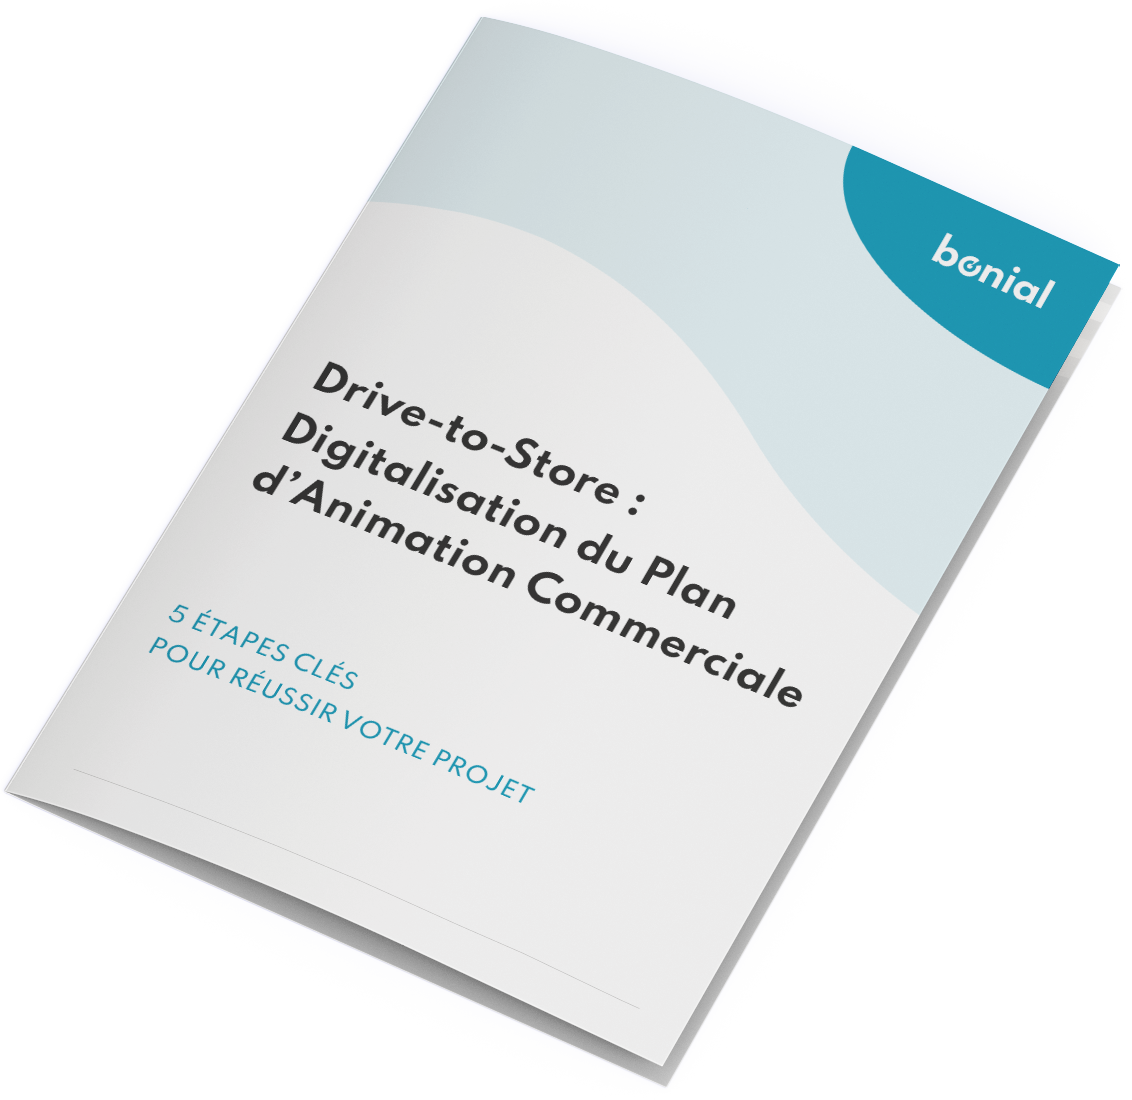 BON-Ebook-Digitalisation_PAC-Mockup_contenu-201020-C4